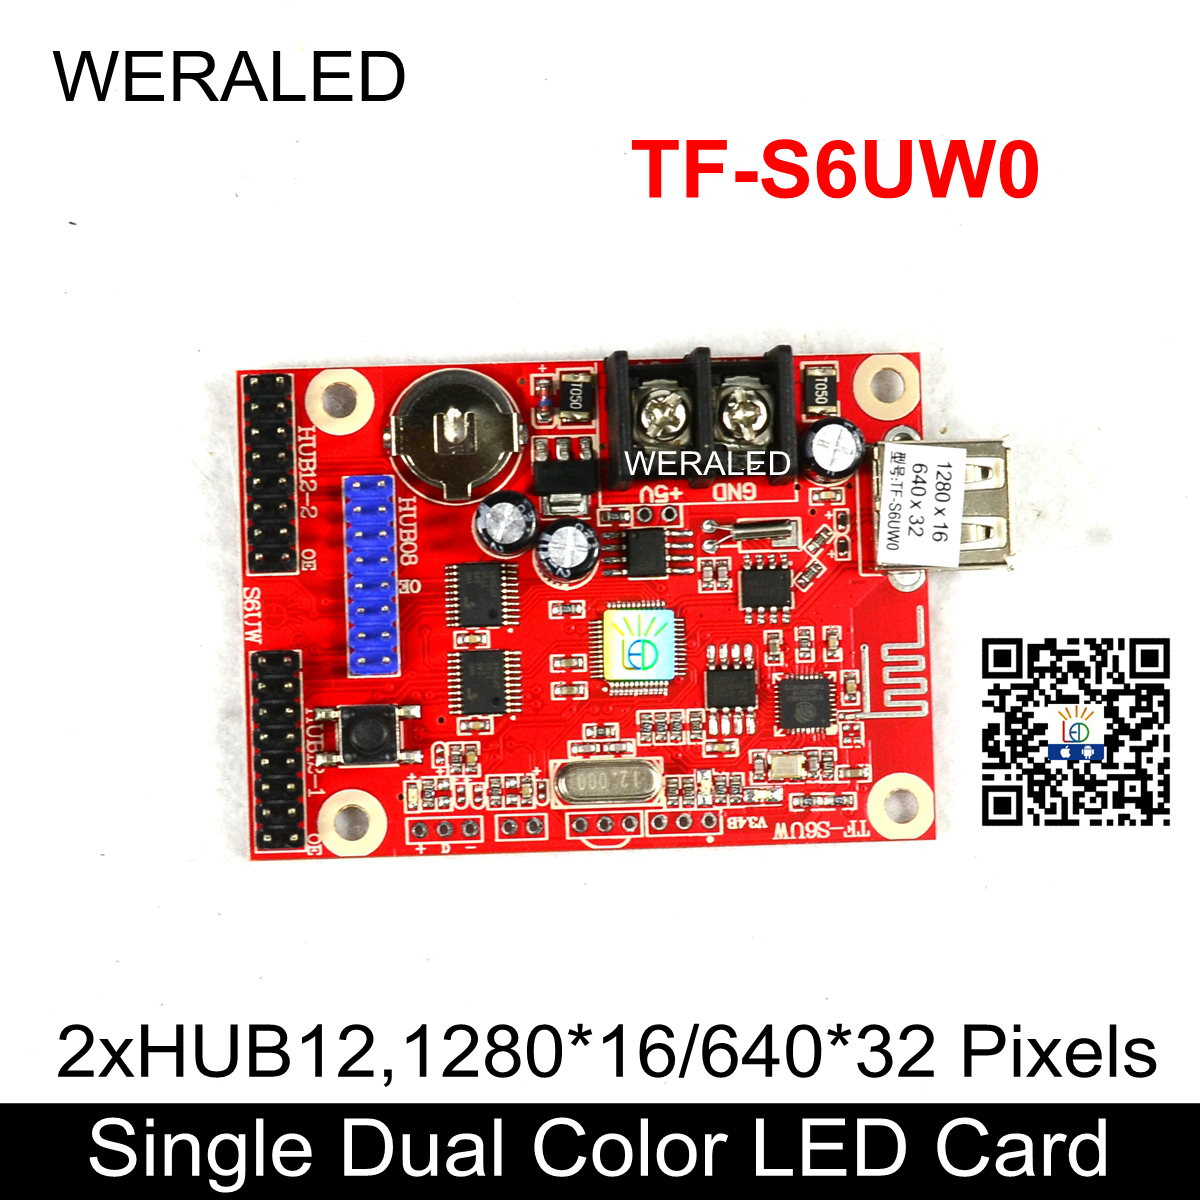 Aliexpress Hot Selling TF-S6UW0 P10 LED Module Panel LED Message Signboard Control Card,USB-DISK & WIFI Wireless P10 ControllerAliexpress Hot Selling TF-S6UW0 P10 LED Module Panel LED Message Signboard Control Card,USB-DISK & WIFI Wireless P10 Controller